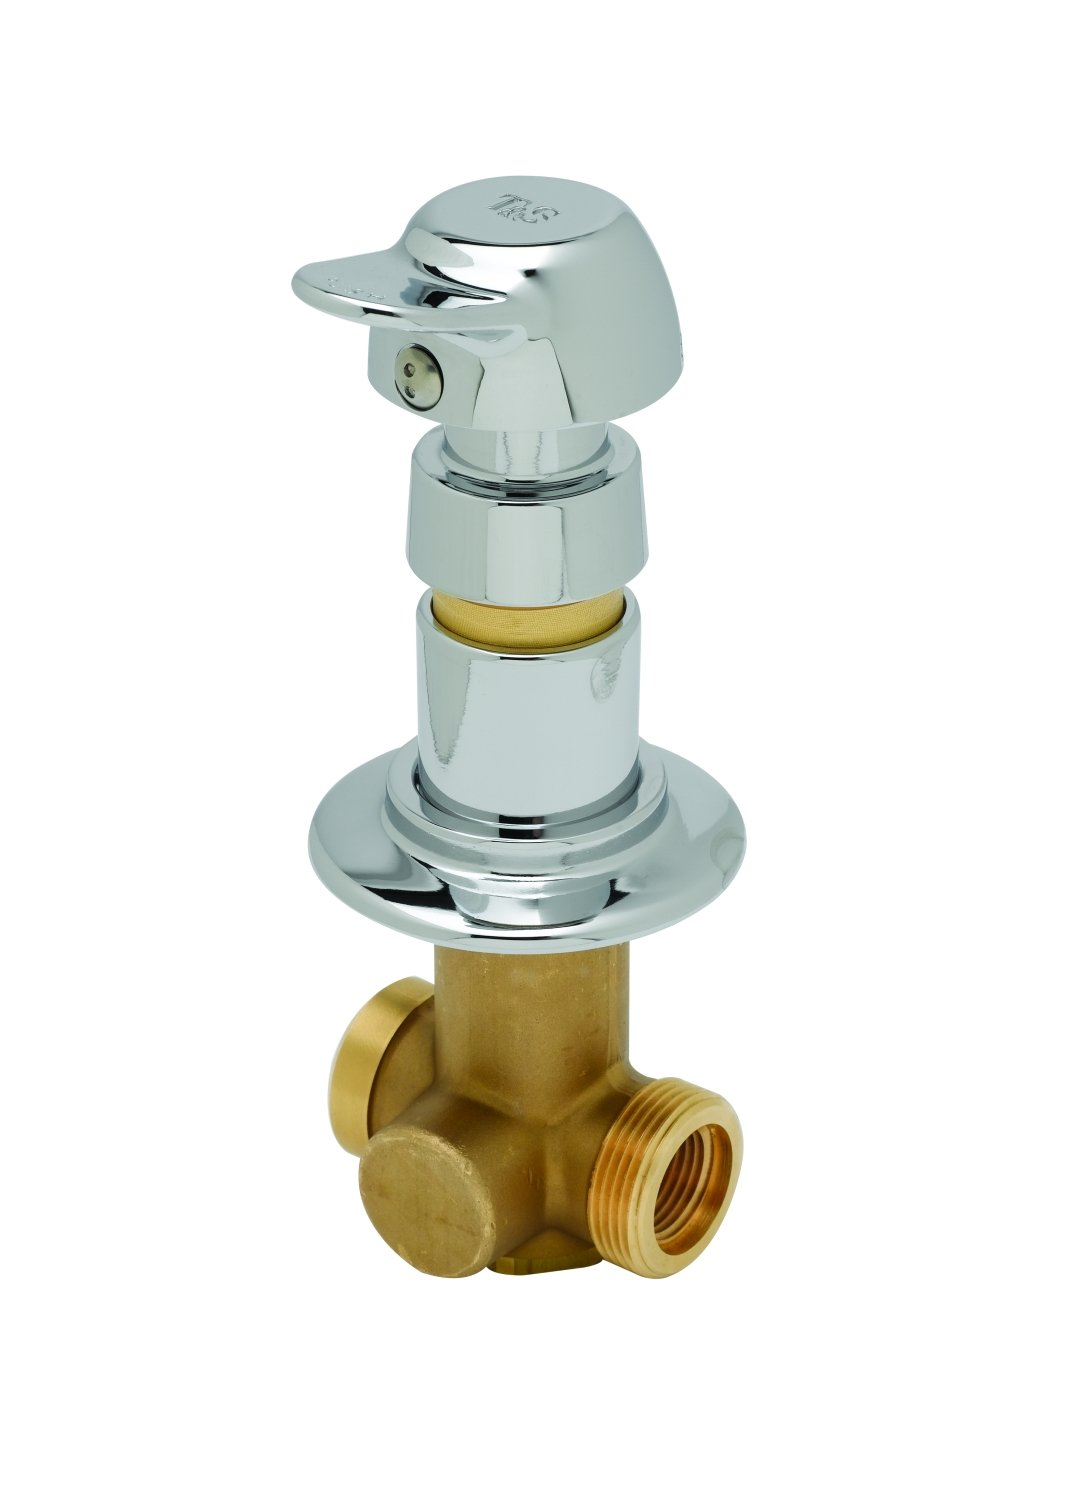 T&S Brass B-1029-PA Concealed Straight Valve, Slow Self-Closing, Pivot Action Metering by T&S Brass B004HGUIBO